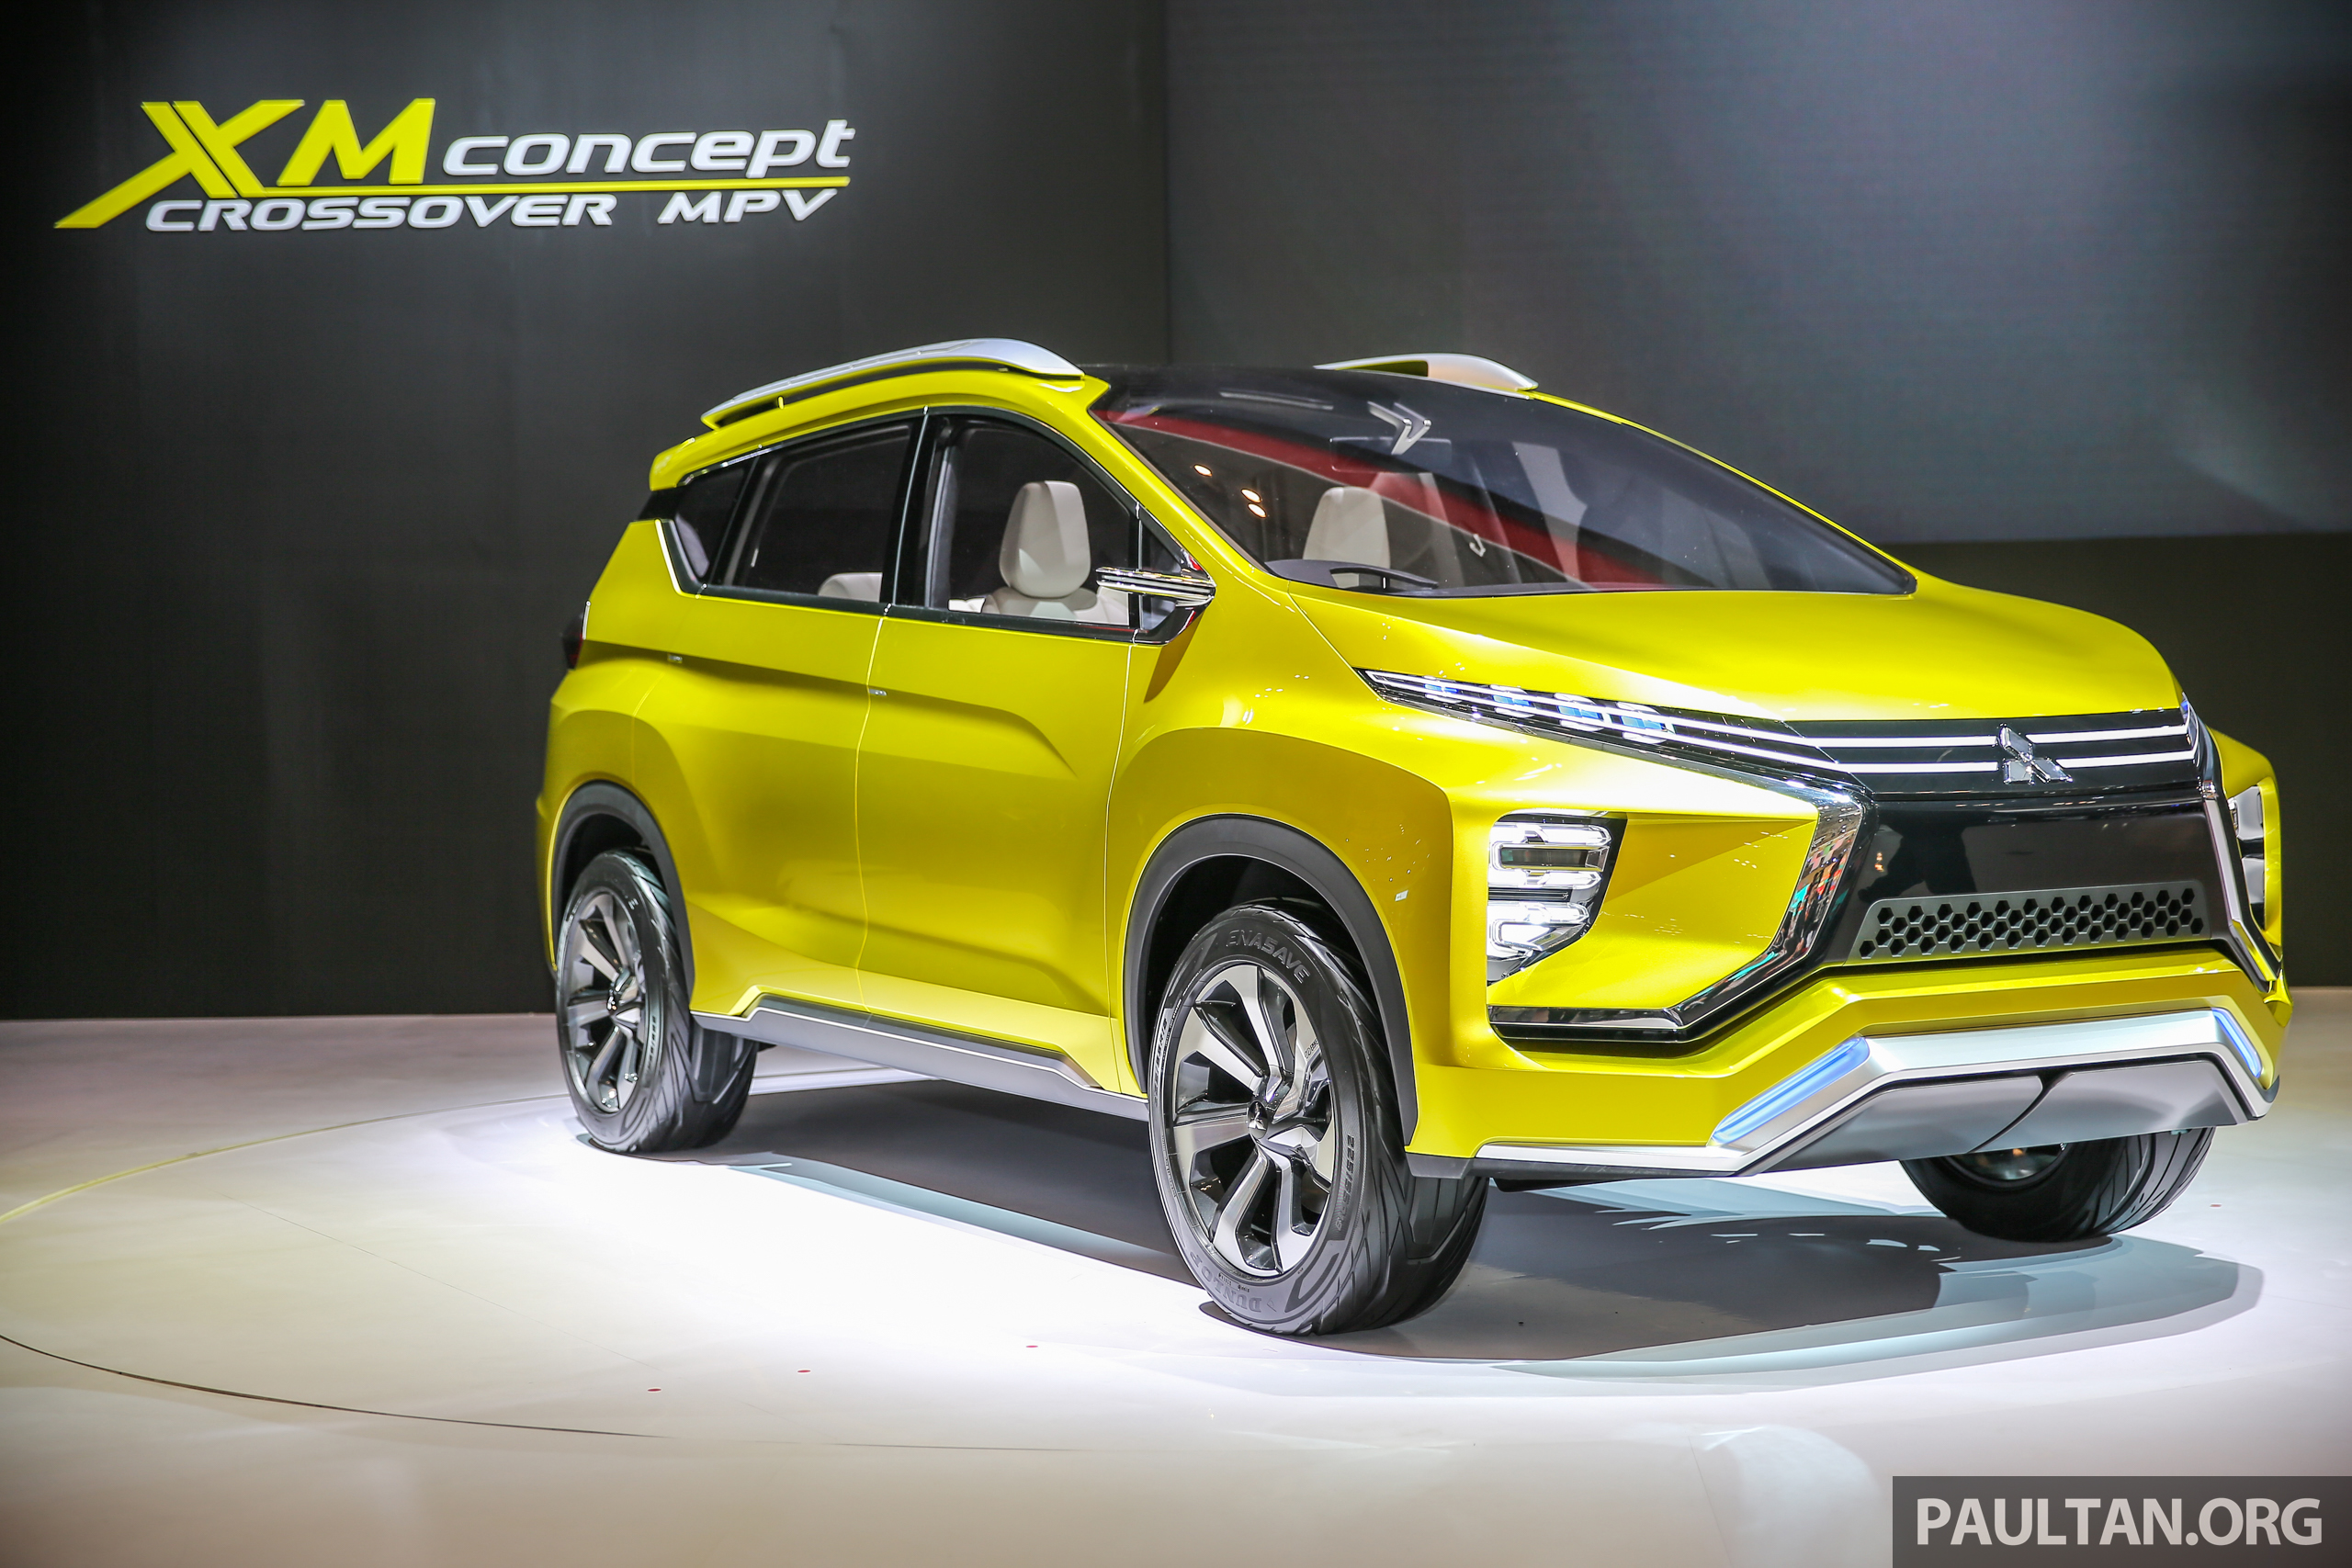 mitsubishi expander 2018 with Mitsubishi Expander To Also Be Rebadged As A Nissan on 46538 together with Promo additionally Production Spec Honda Br V Crossover Rear End Rendering Regarding 2017 Honda Brv Review furthermore Mitsubishi Expander Gunakan Suspensi Milik Evo X in addition Watch.